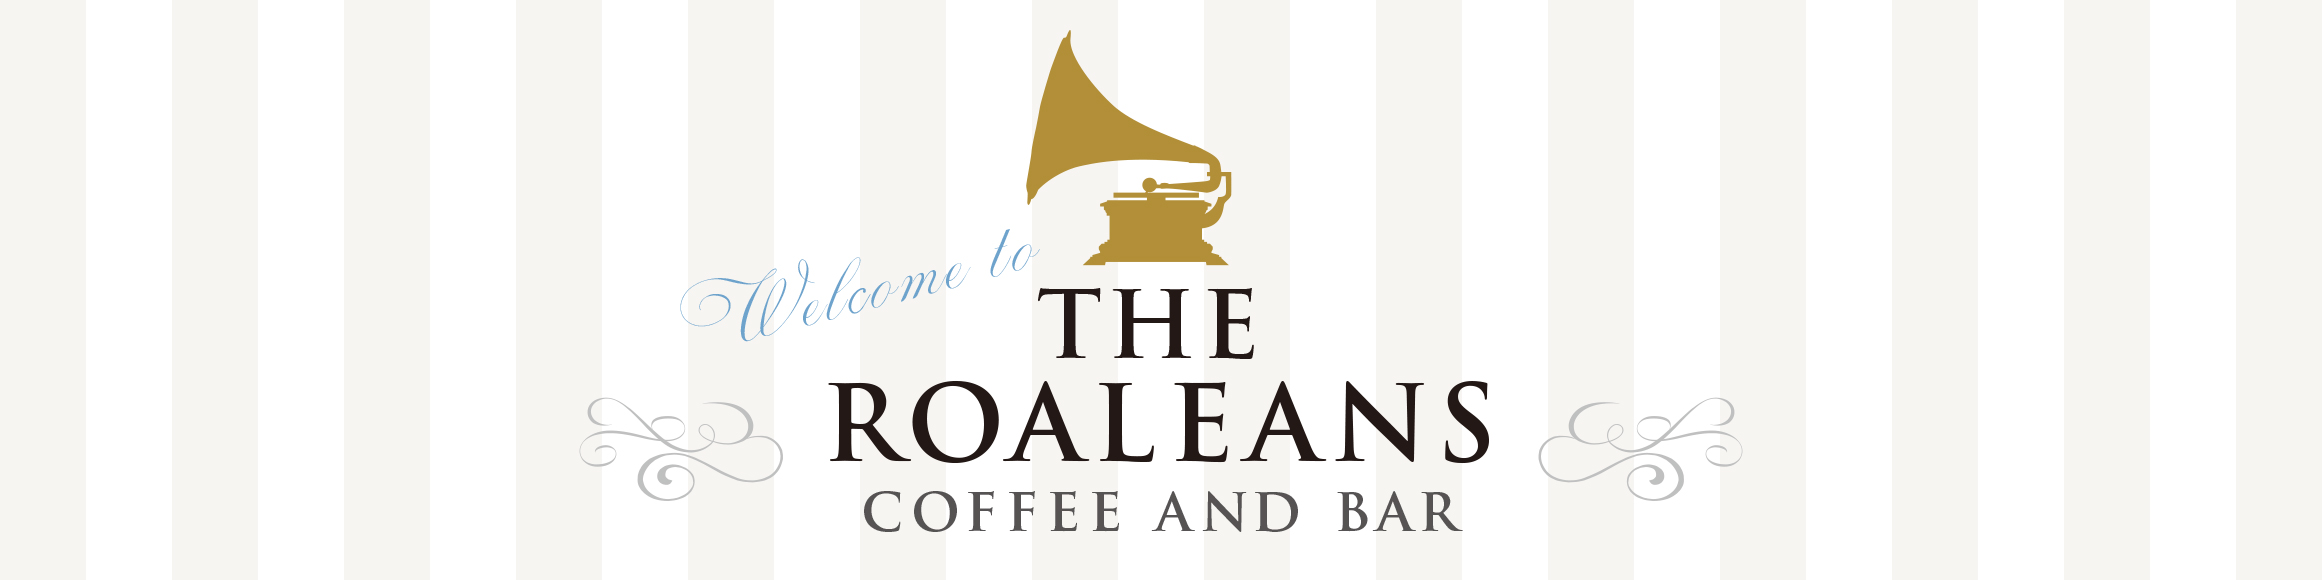 ROALEANS COFFEE AND BAR